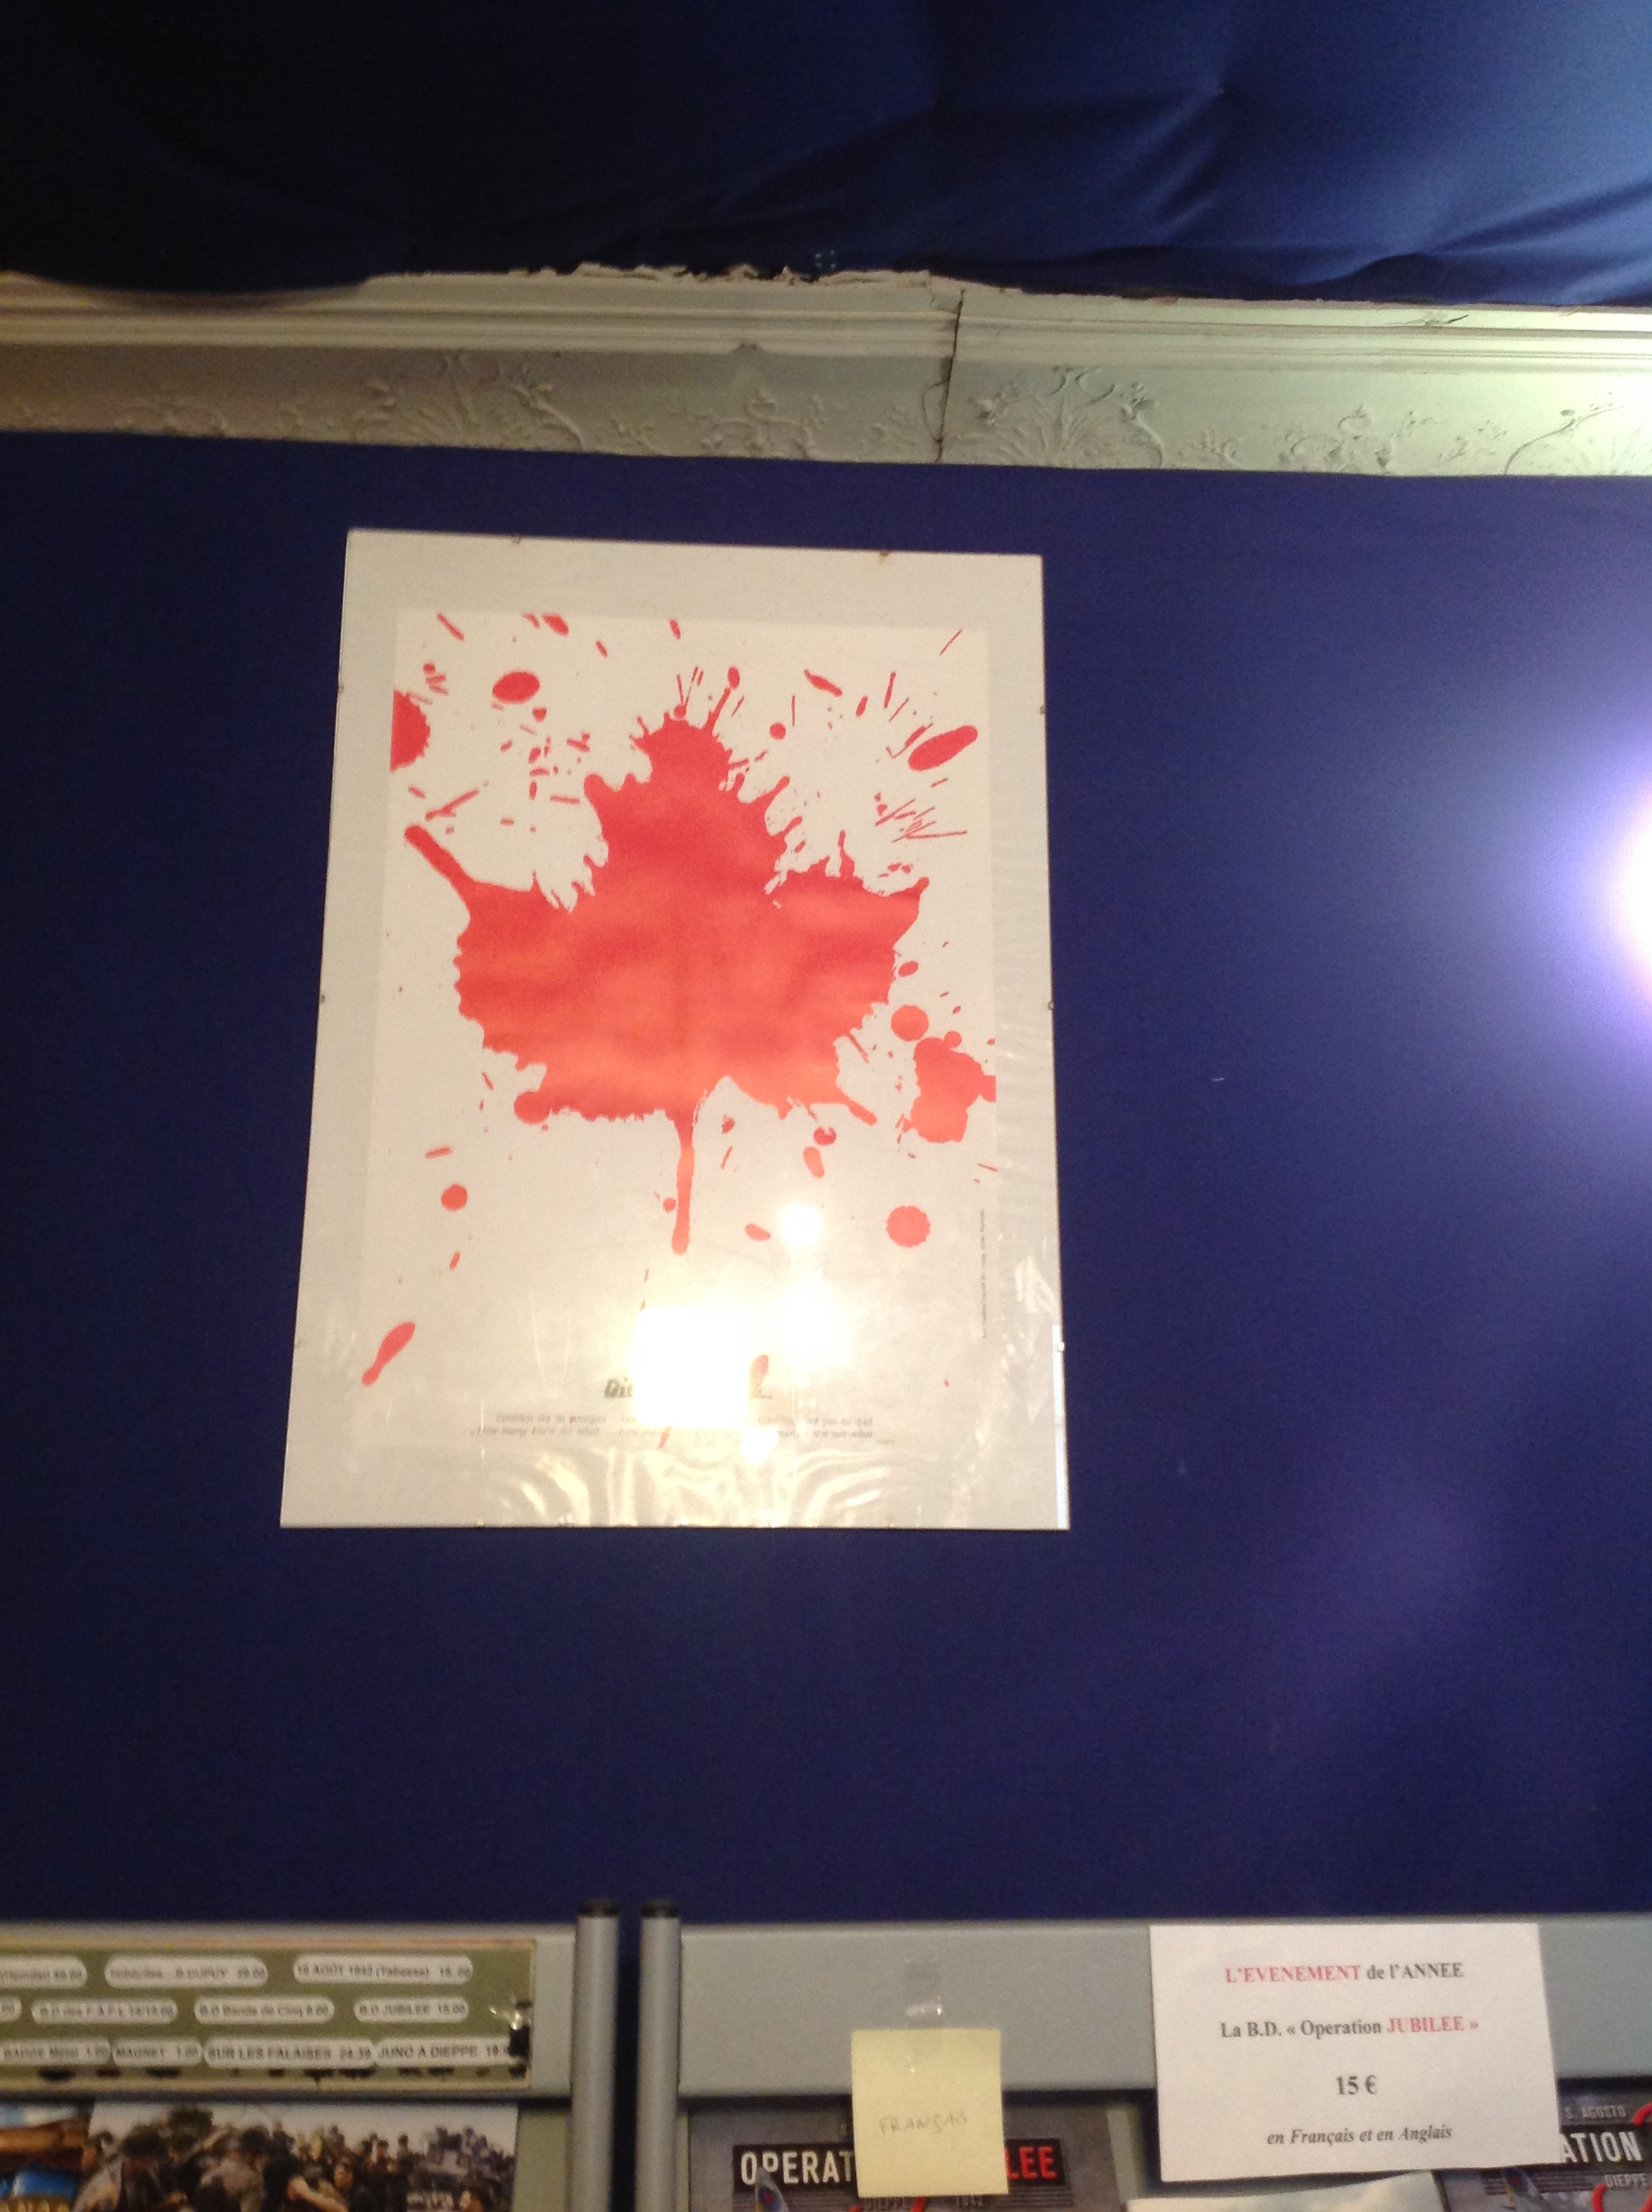 This graphic depiction of the Canadian maple leaf as a splatter of blood which hung in the entrance struck me as particularly poignant.